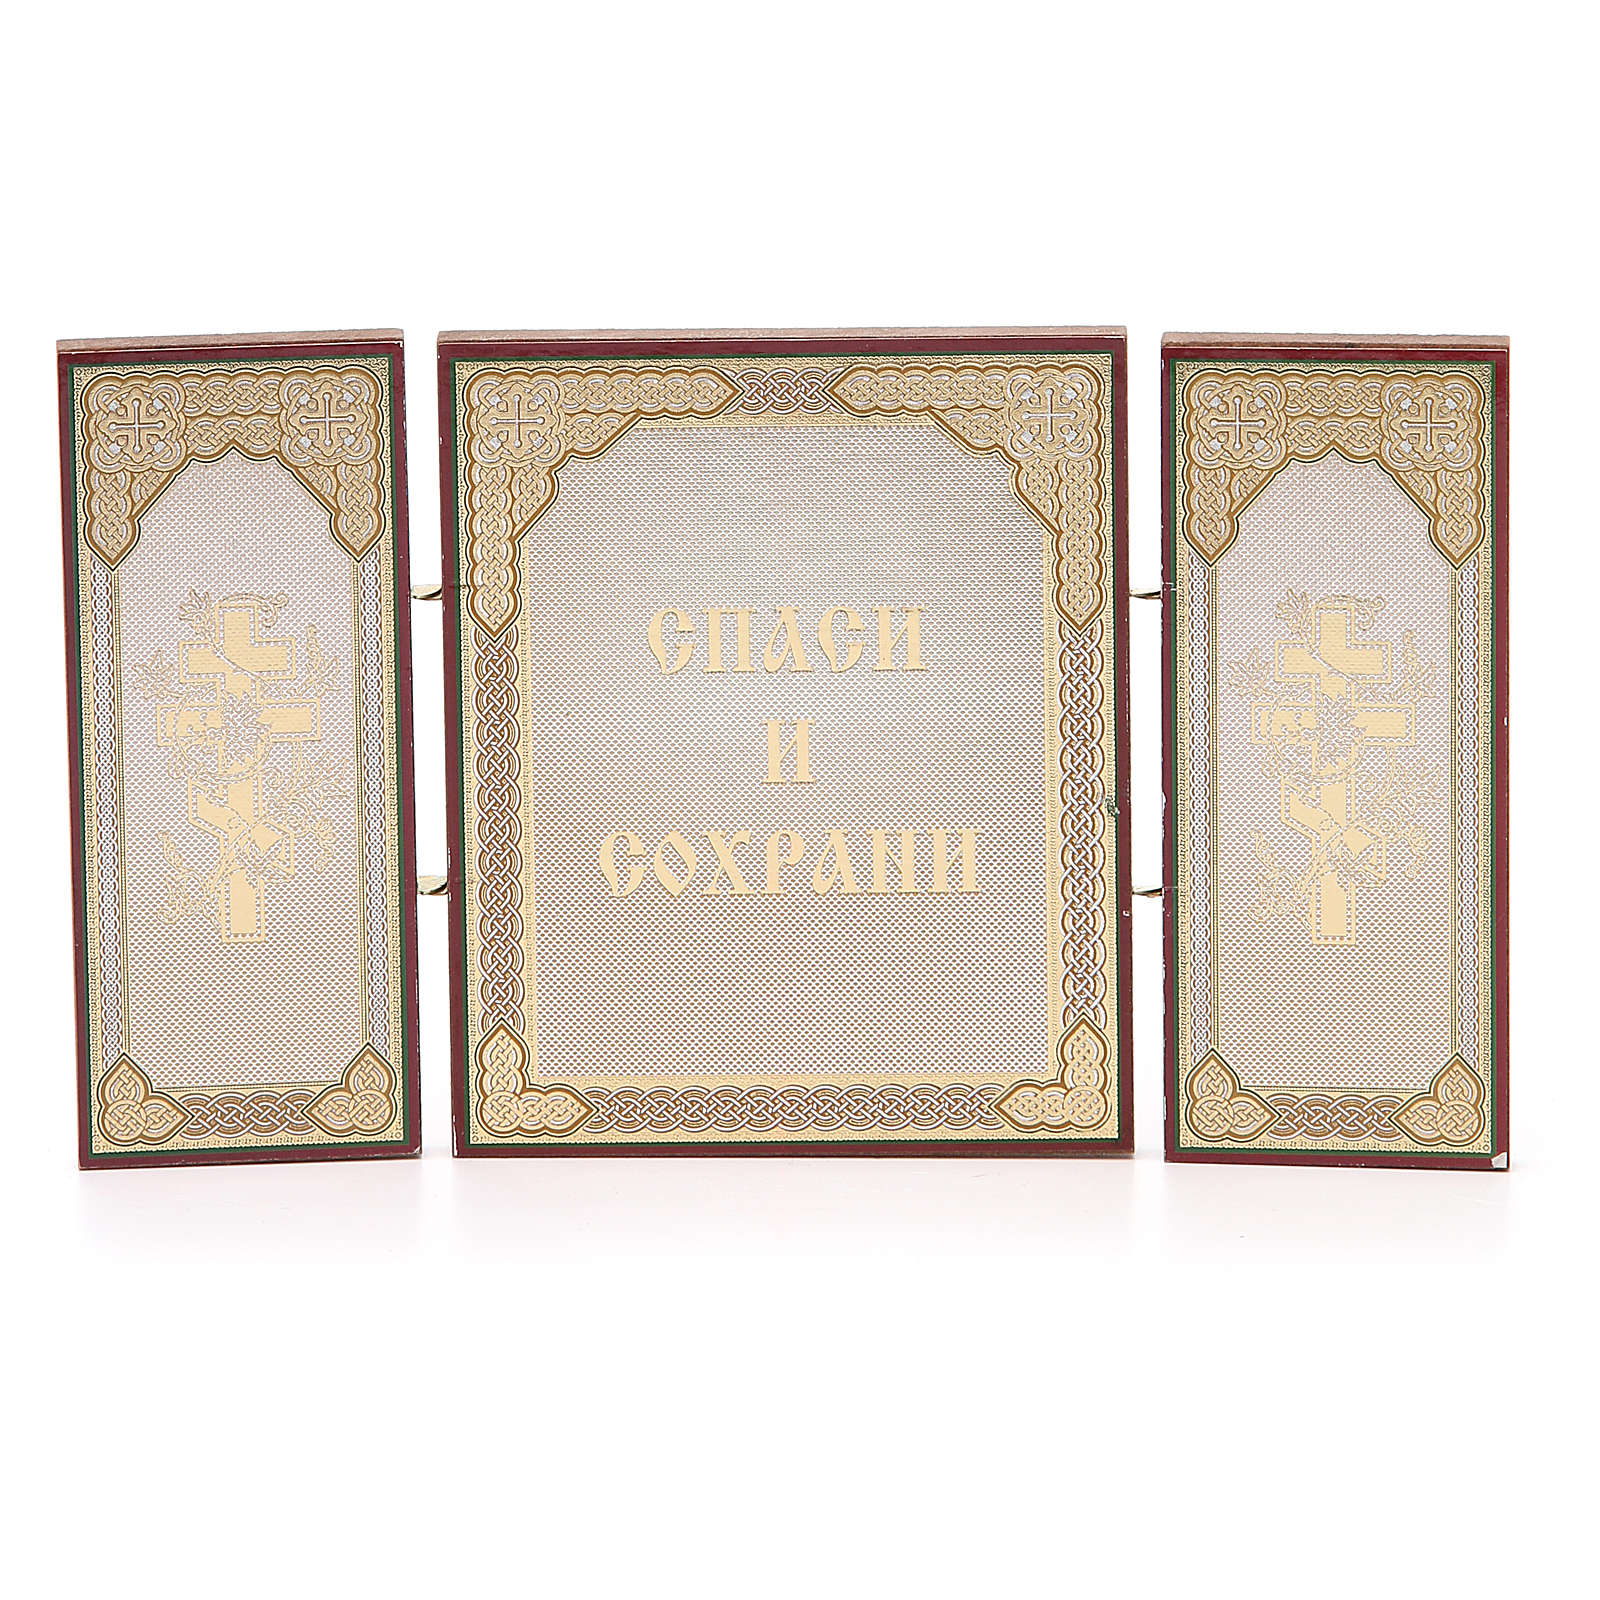 Triptych Russia wood Resurrection 21x12cm 3